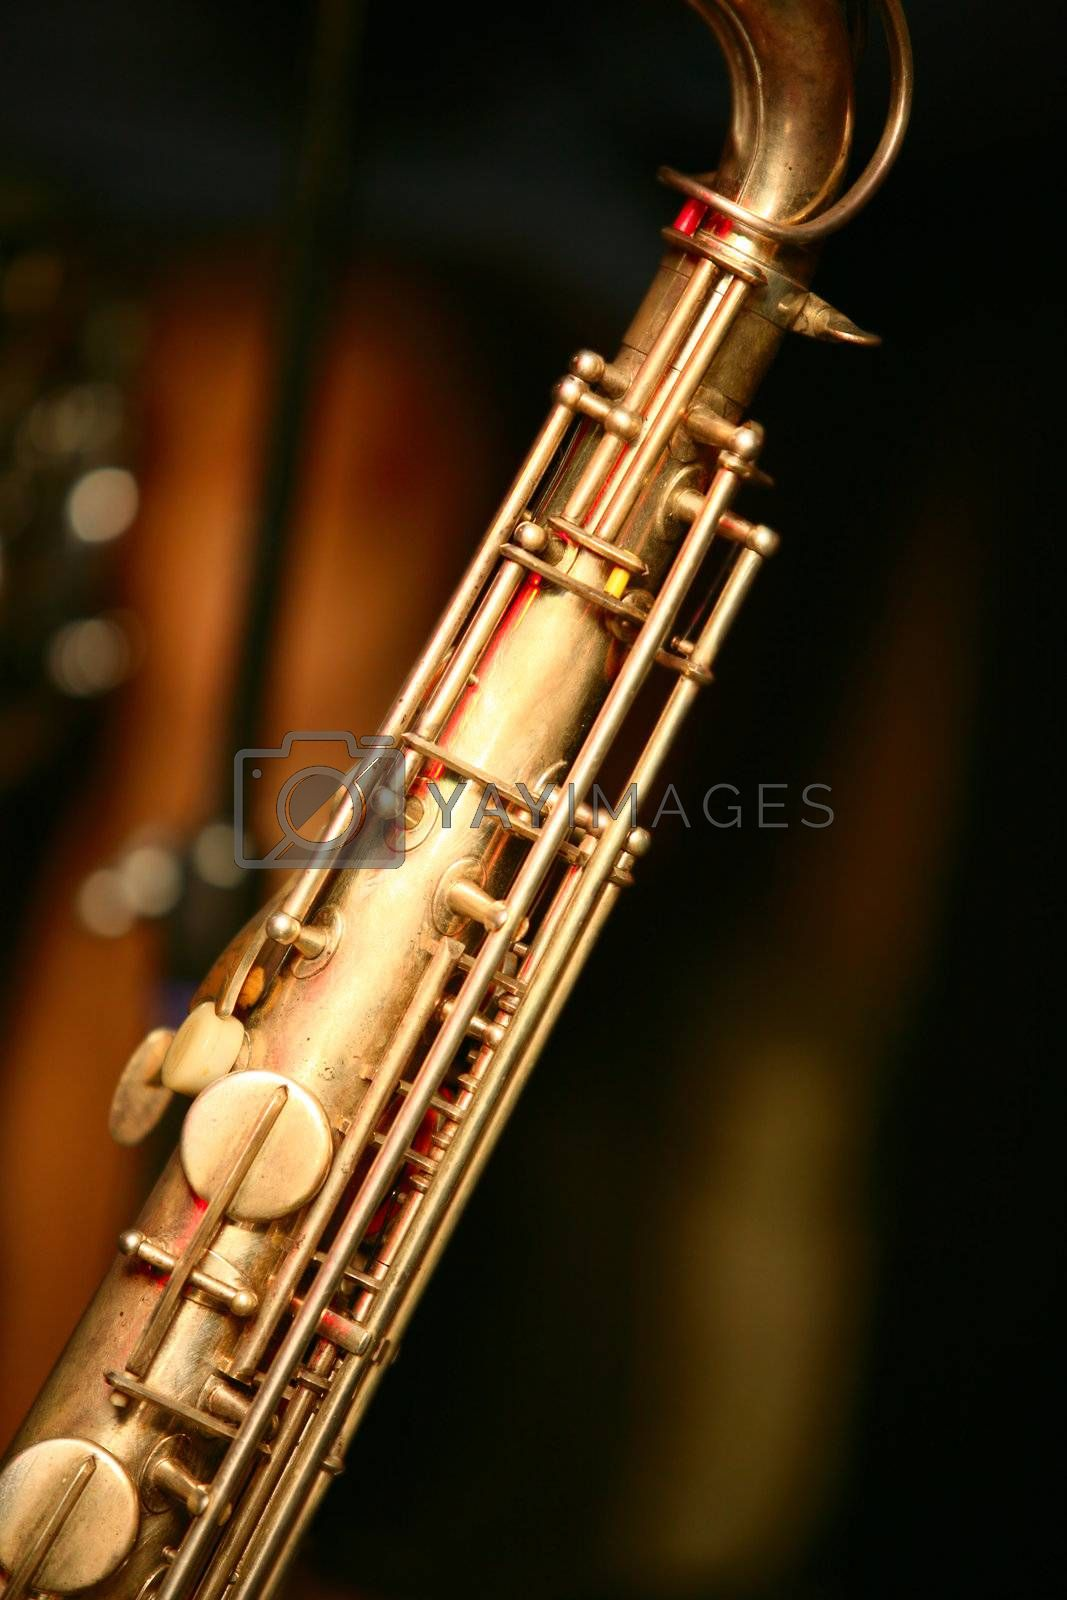 Saxophone by friday